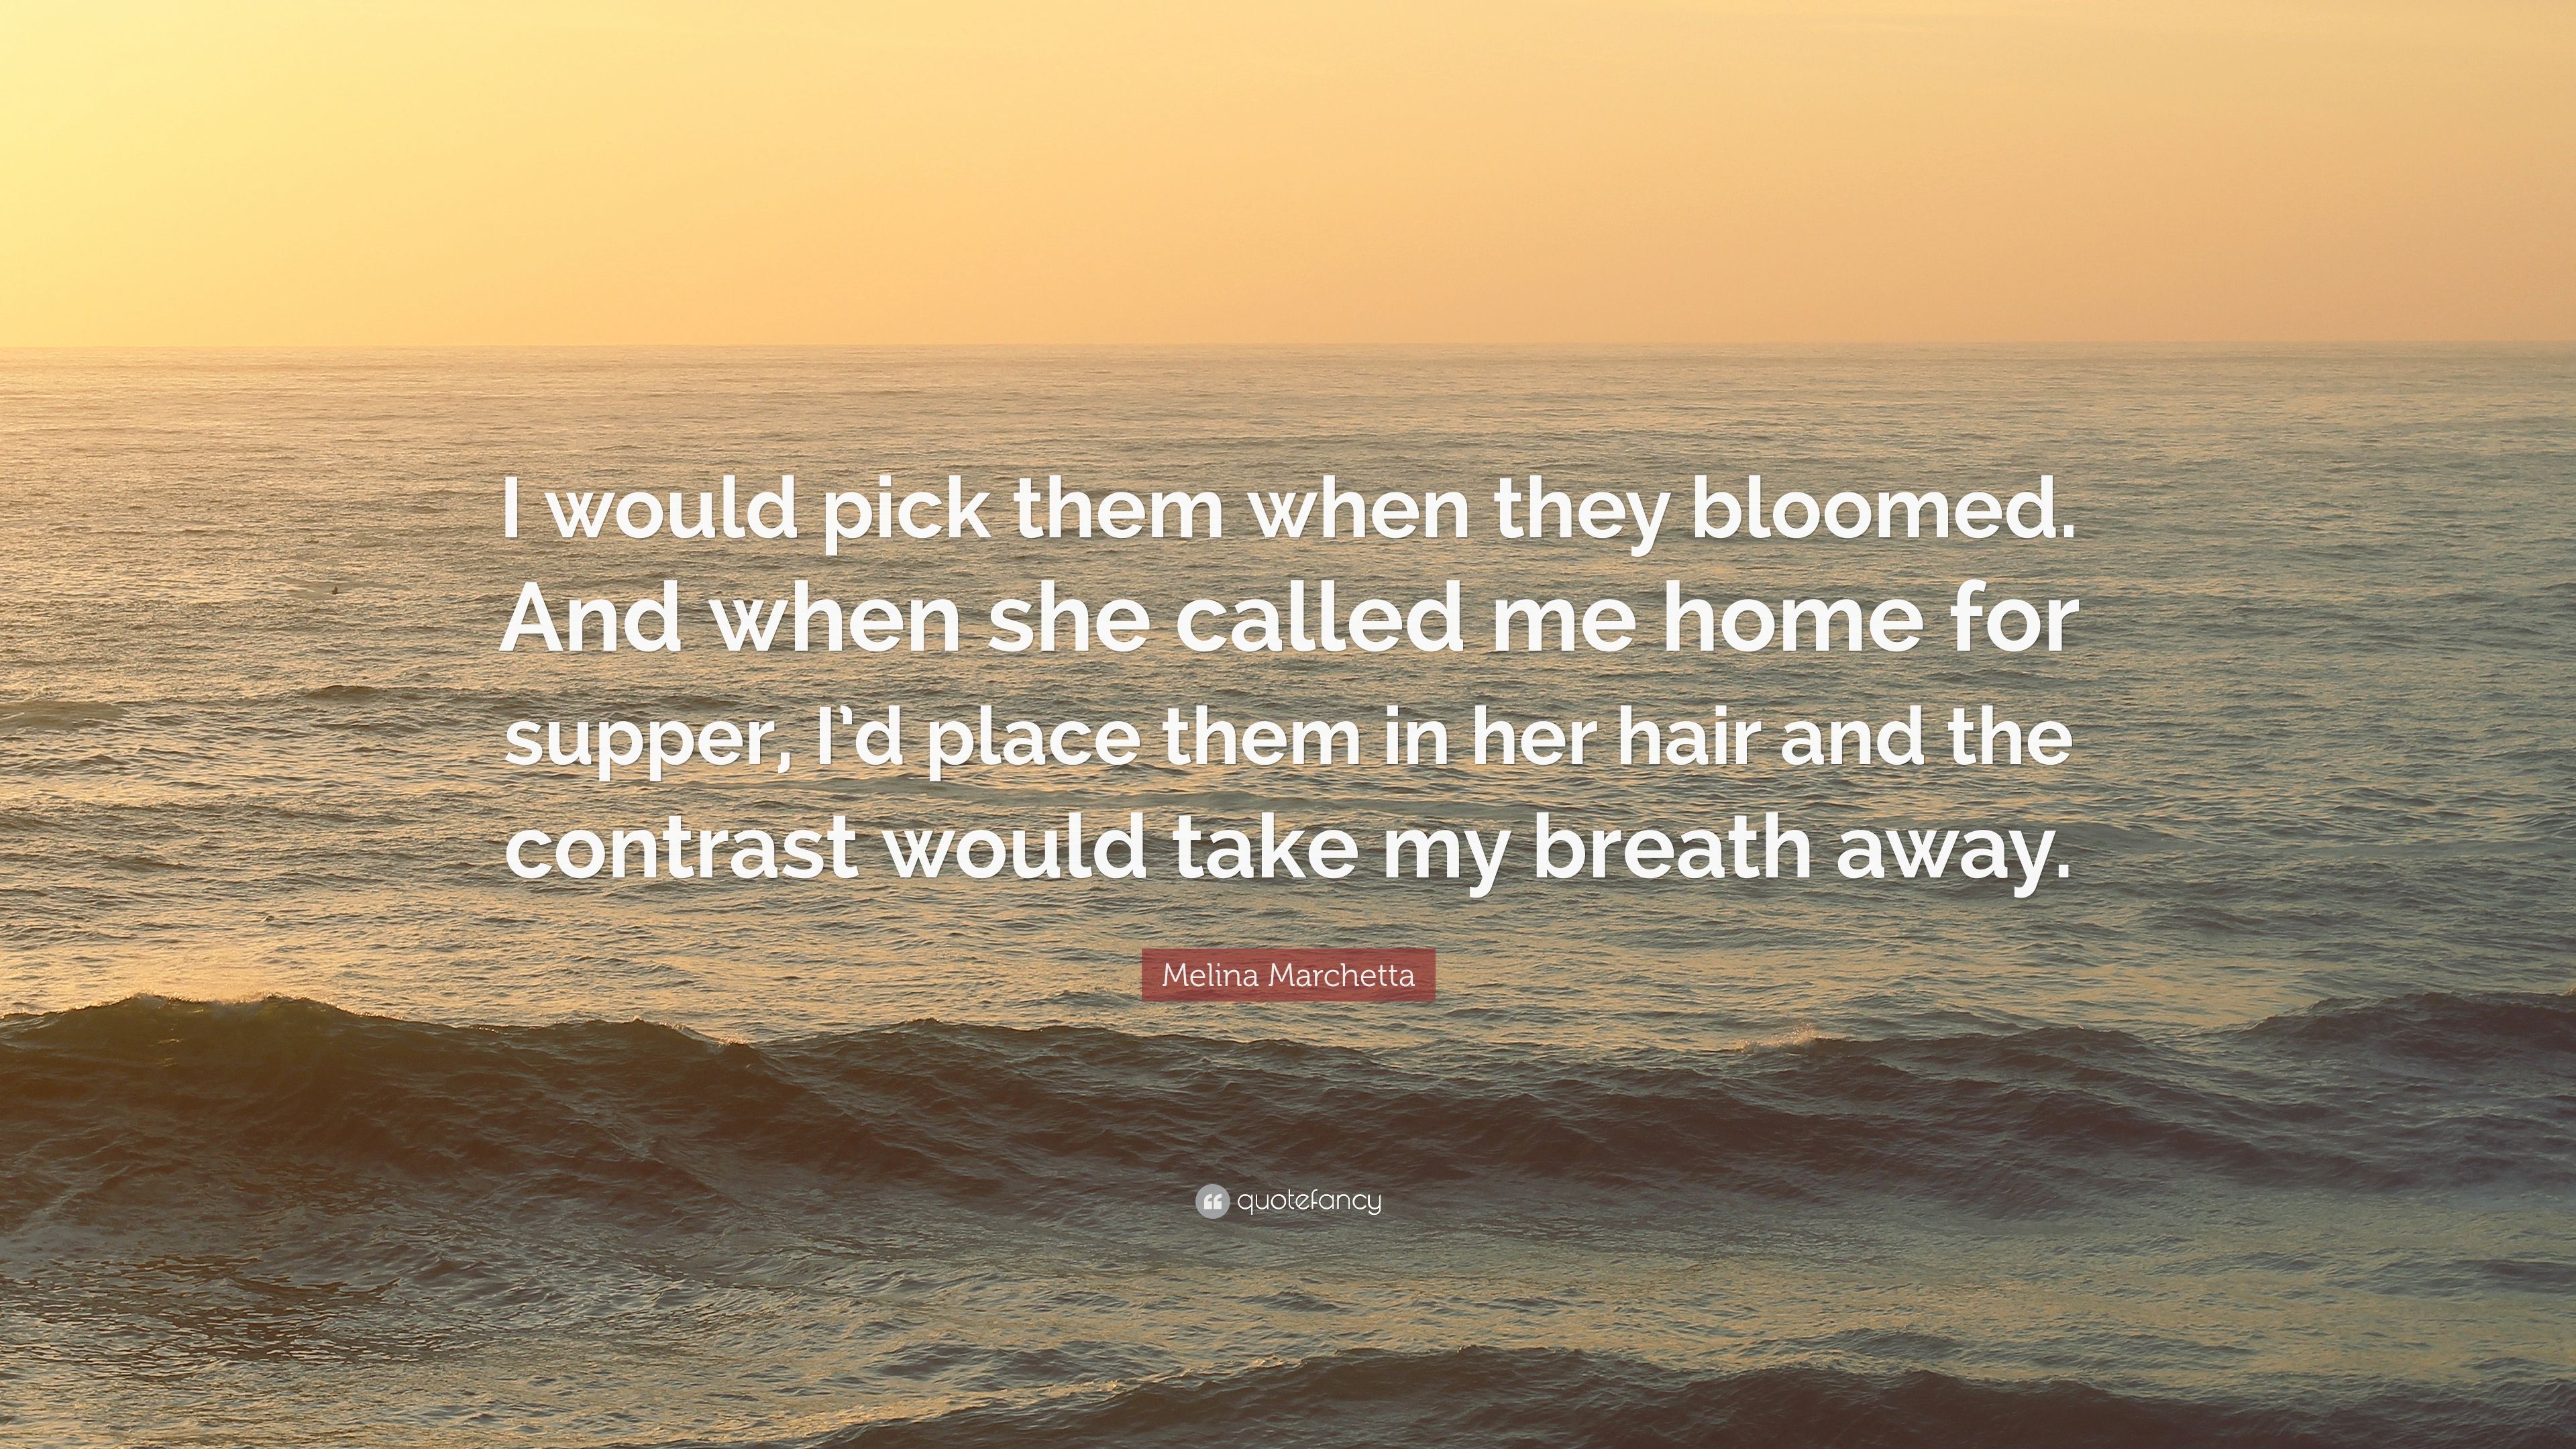 She takes my breath away quotes